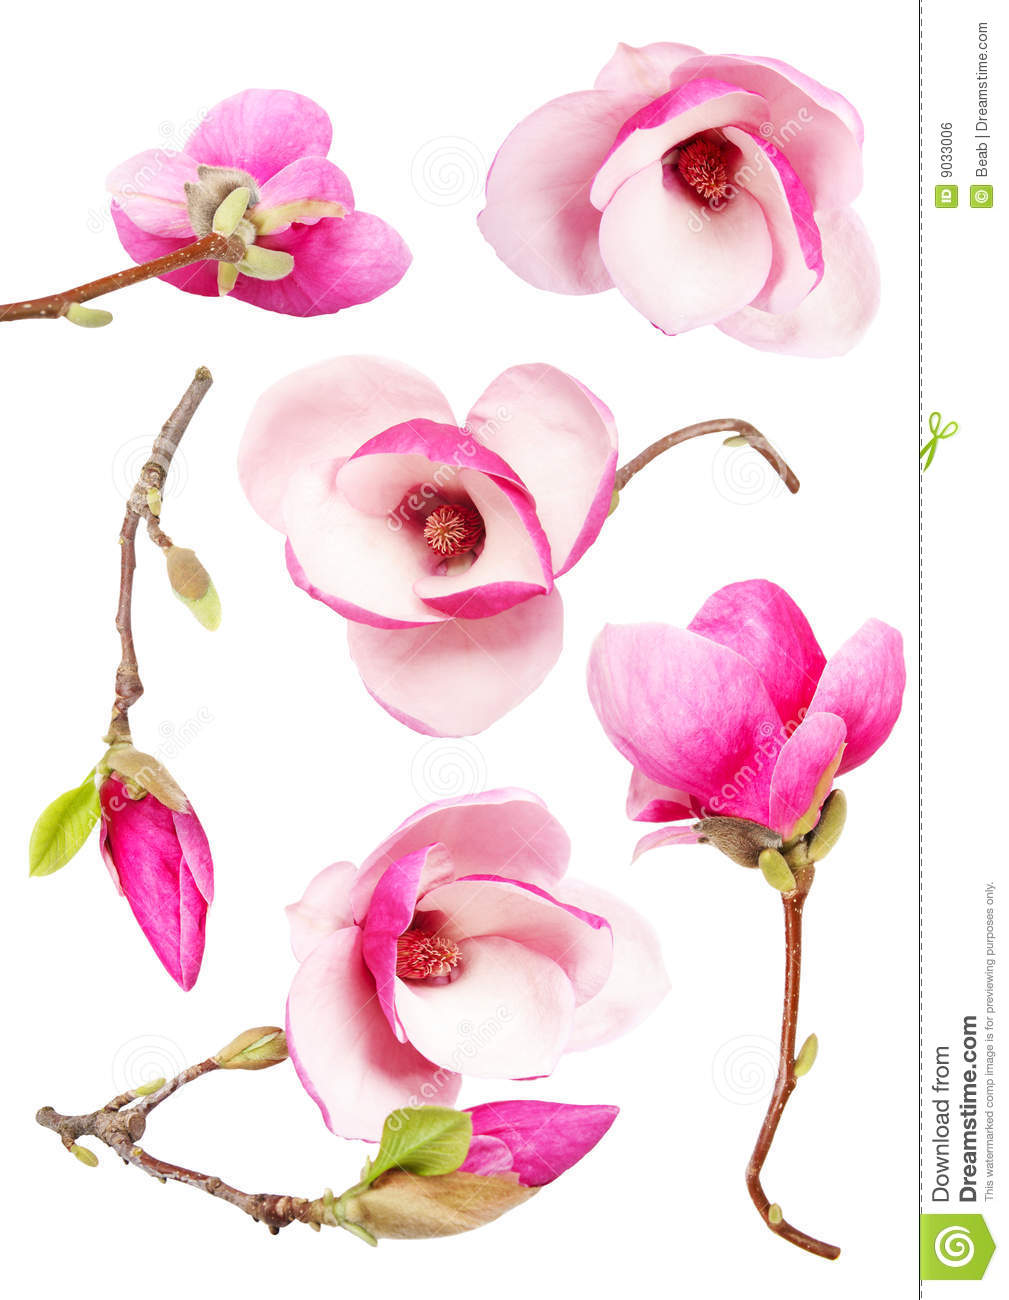 Download Magnolia stock photo. Image of closeup, background, isolated - 9033006